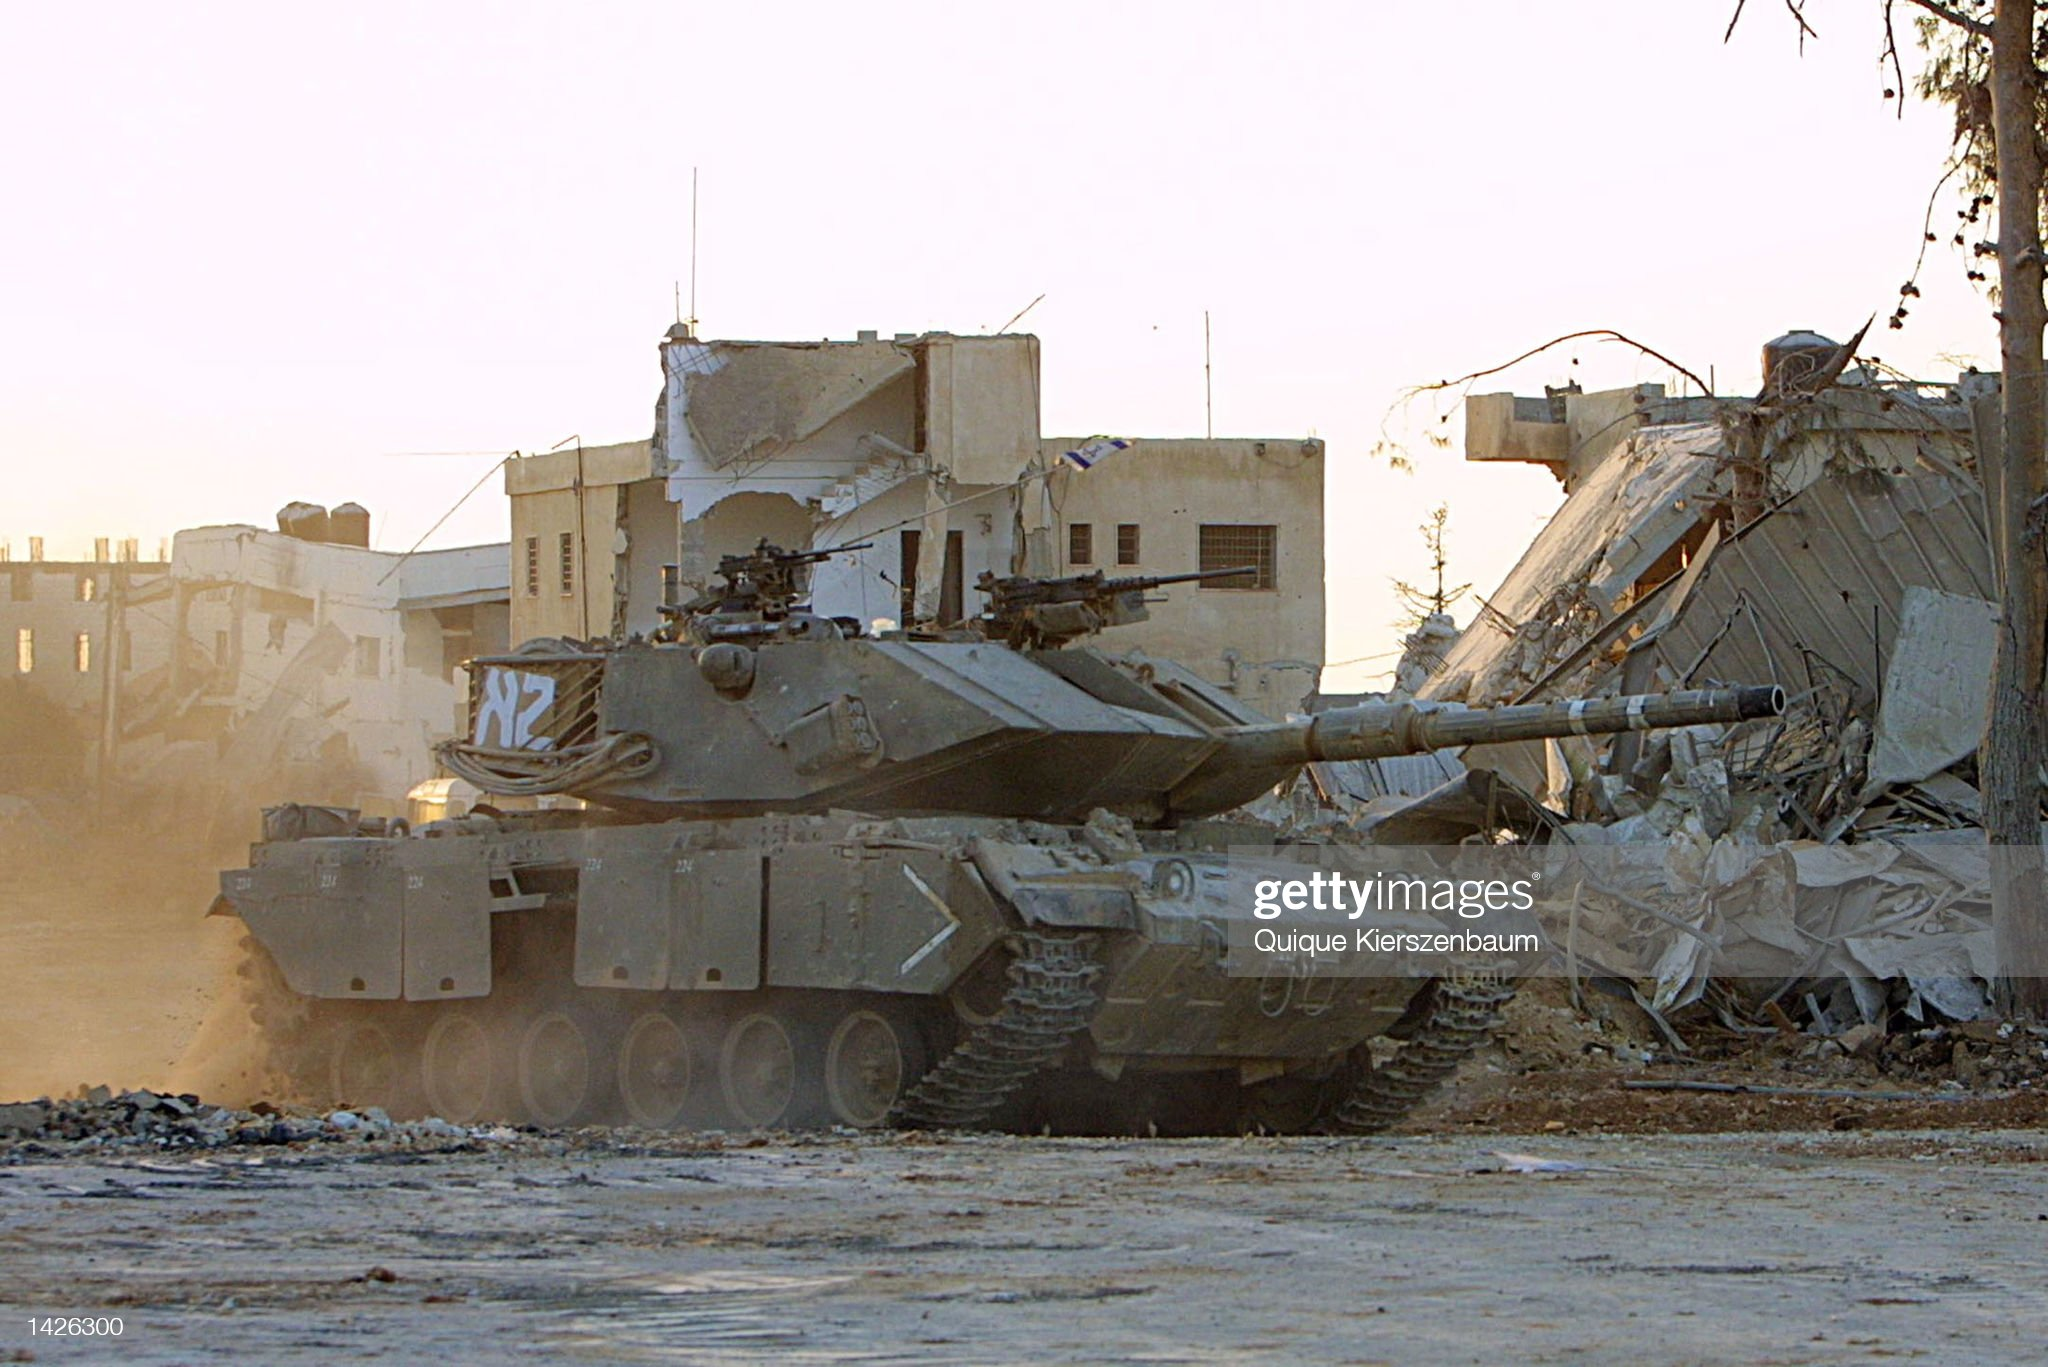 https://media.gettyimages.com/photos/an-israeli-tank-patrols-around-the-battered-buildings-of-palestinian-picture-id1426300?s=2048x2048